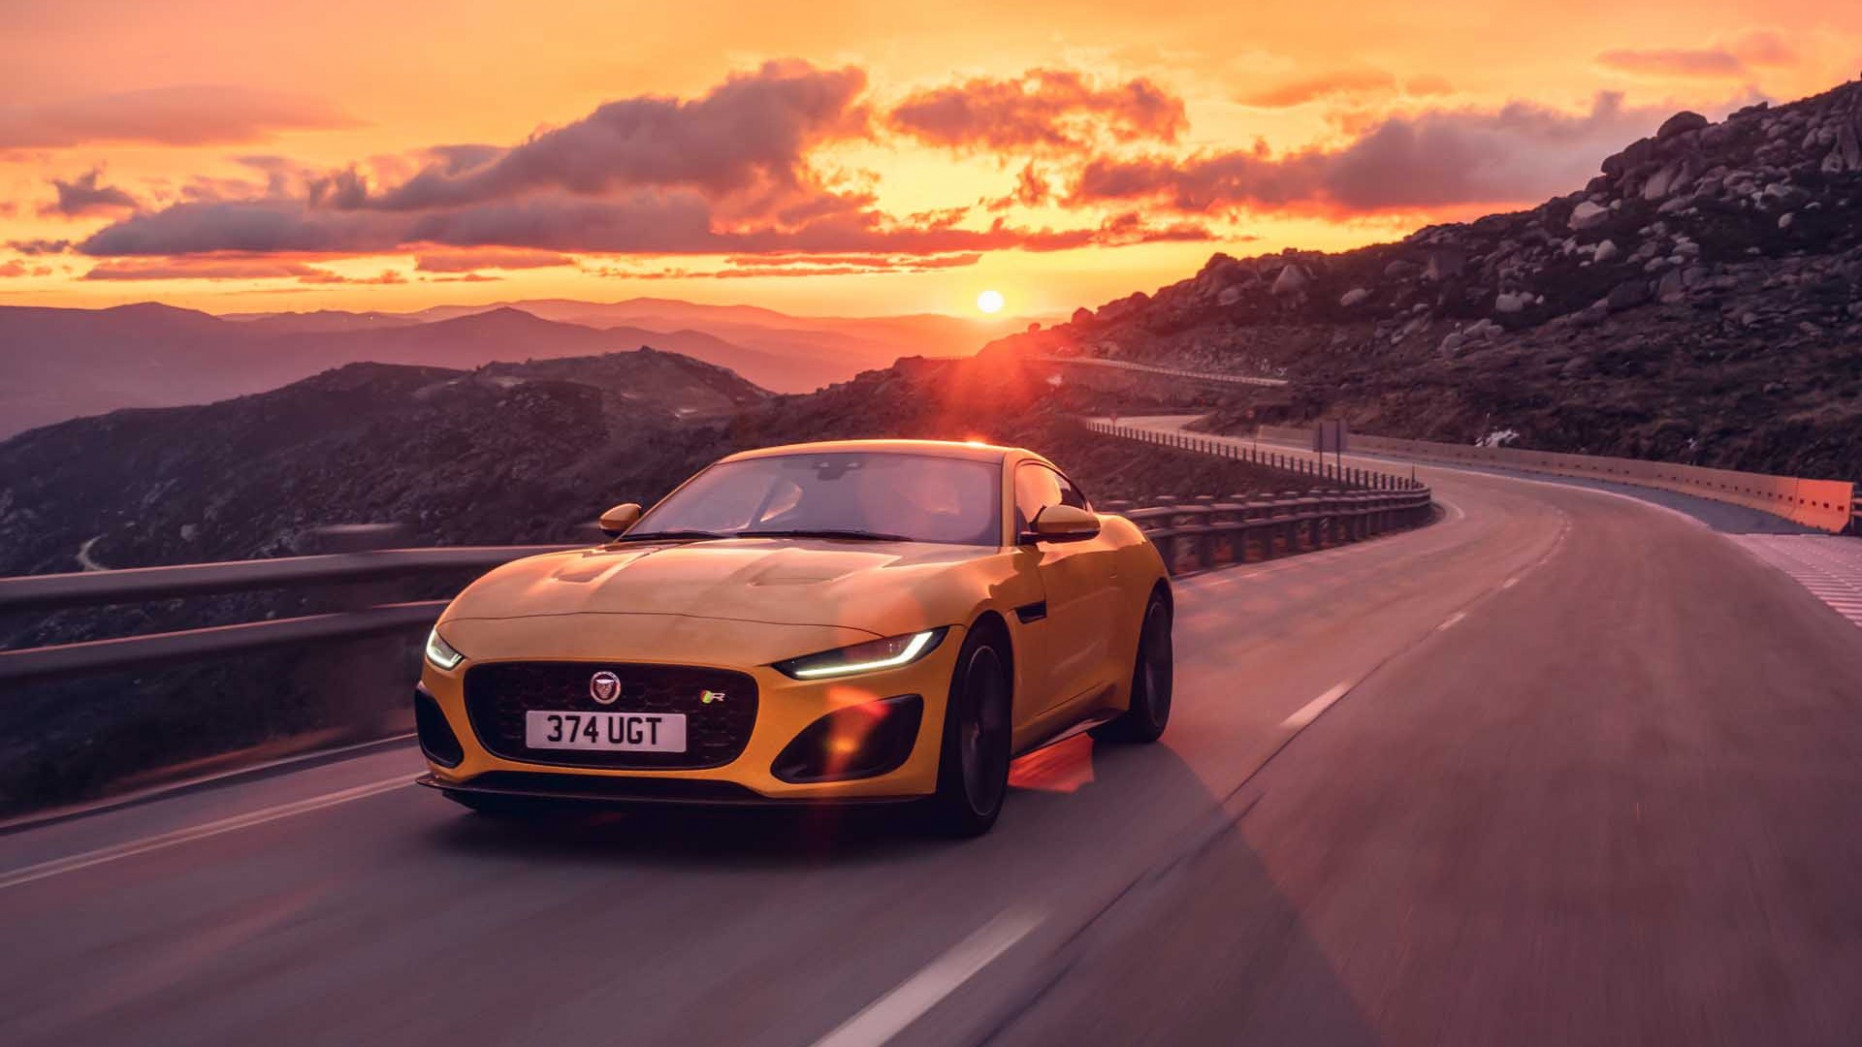 Car Spy Shots, News, Reviews, and Insights - Motor Authority | 2020 Jaguar F Type Manual